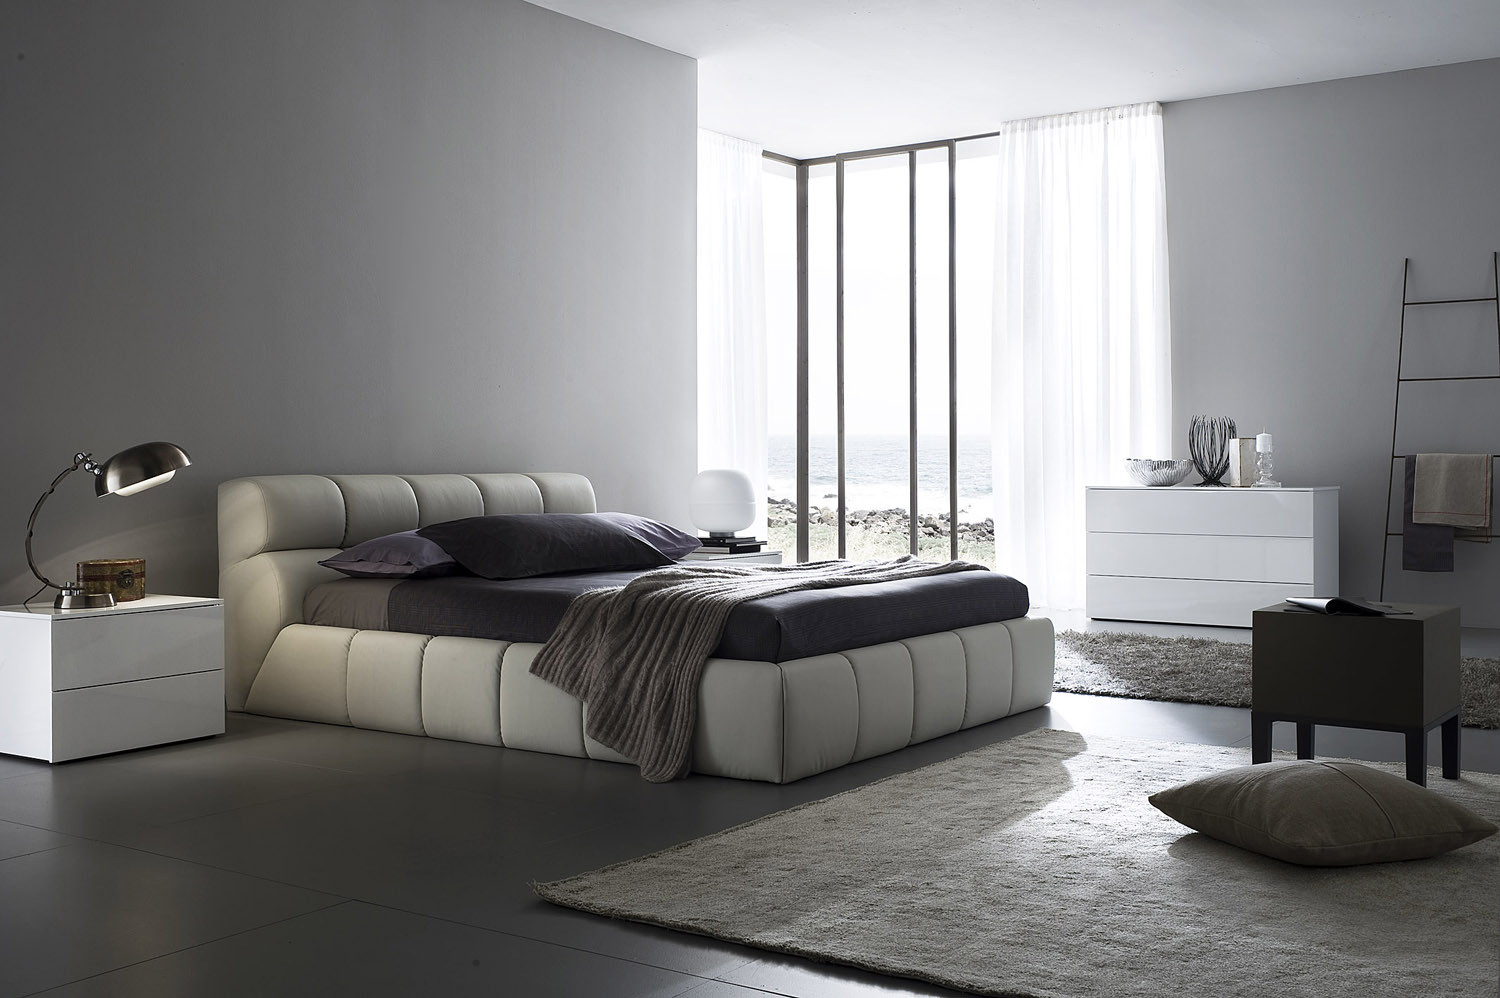 Best ideas about Contemporary Bedroom Ideas . Save or Pin Bedroom Decorating Ideas from Evinco Now.